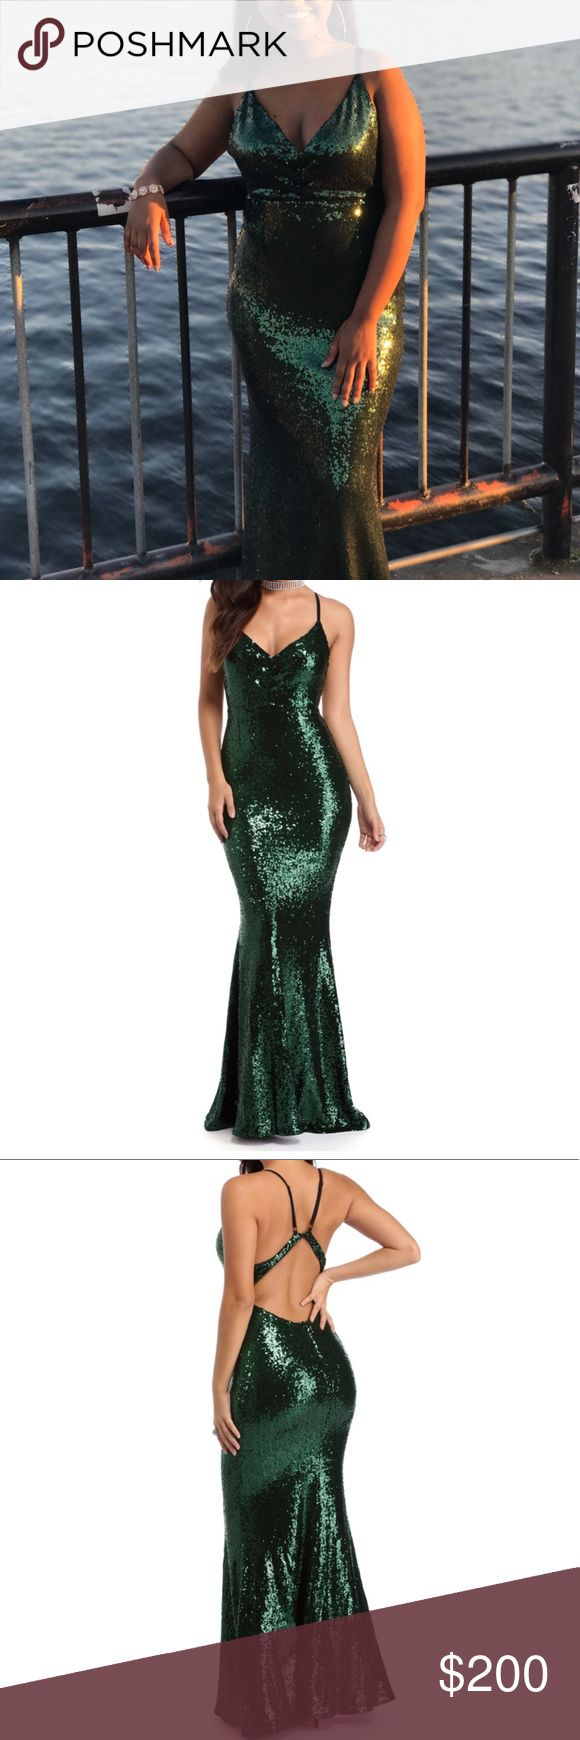 Sparkly Prom Dress It's a long green, sparkly dress that's gorgeous!! I wore it for my prom and I got a ton of compliments! Dresses Prom